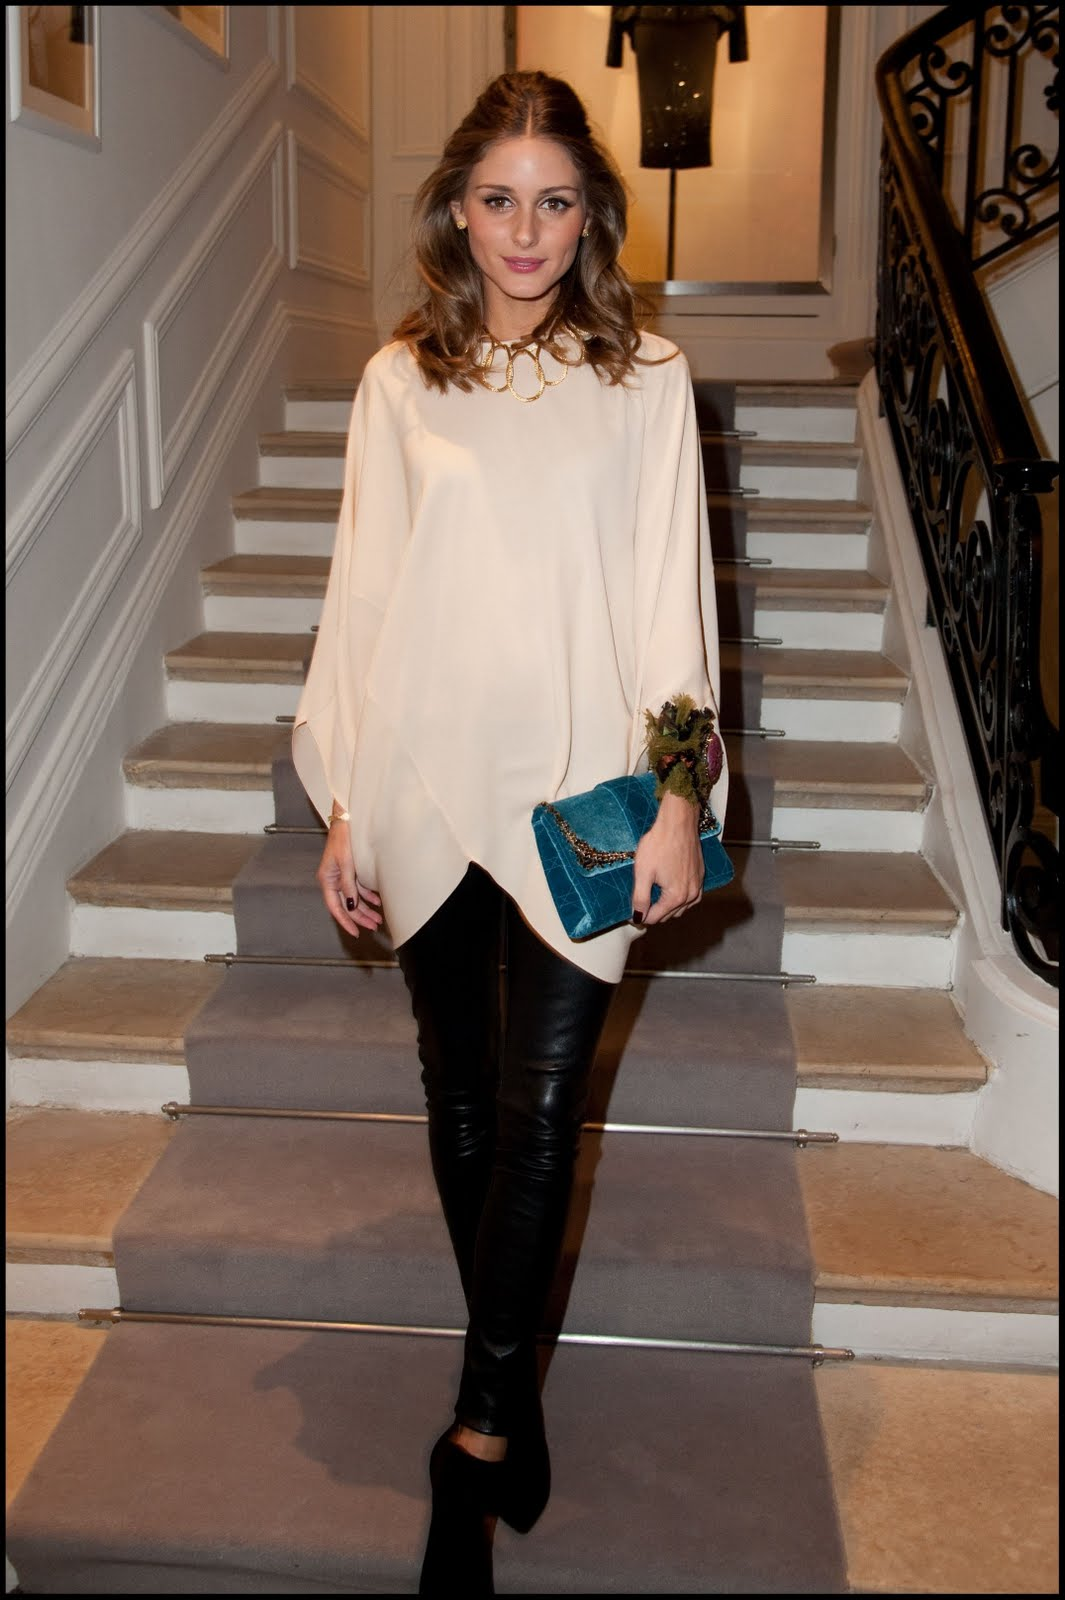 Wedding Bride Olivia Palermo At The Dior Haute Couture 2012 Show During Paris Fashion Week